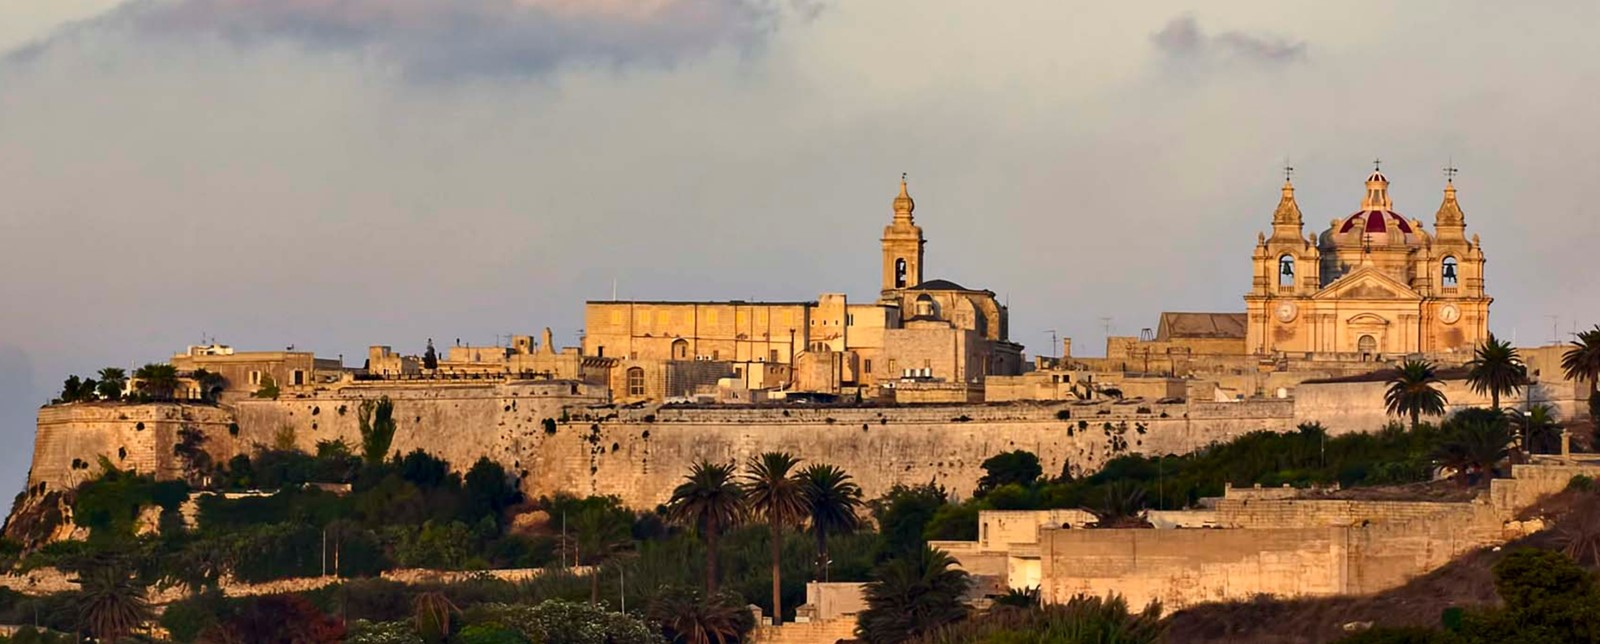 Things to do in Mdina | Mdina © ViewingMalta.com